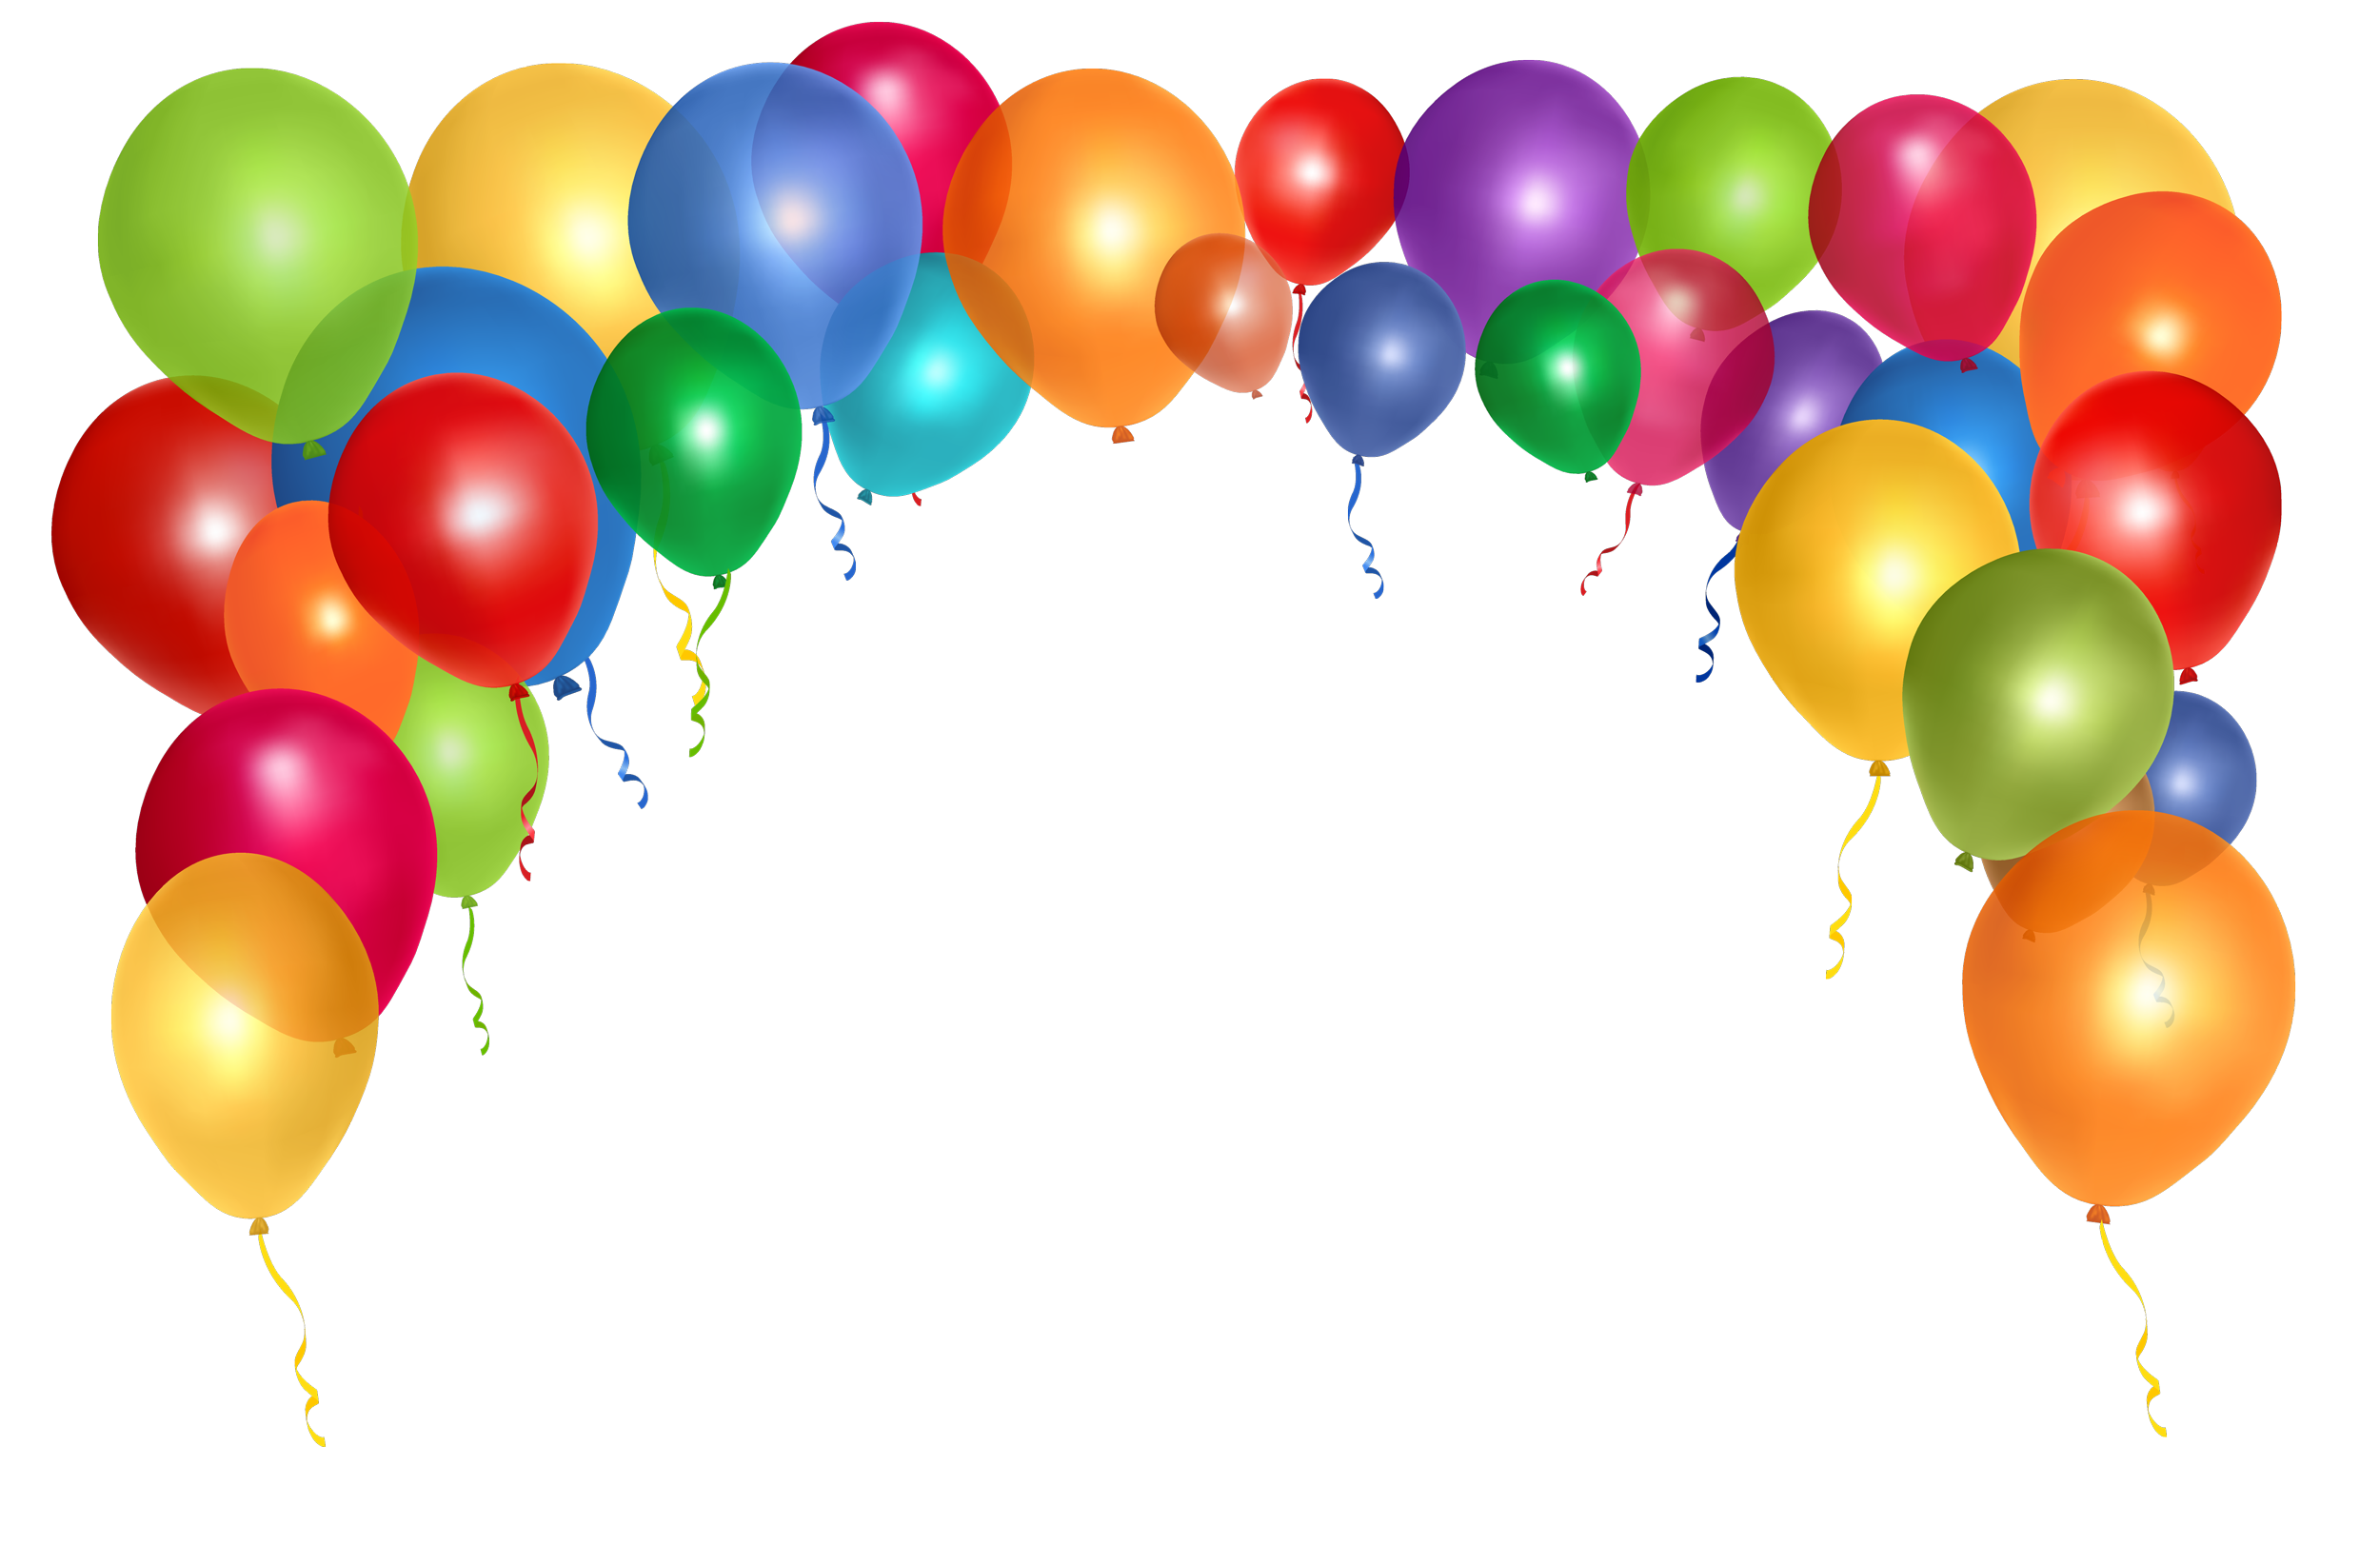 Balloons Free Download PNG Image